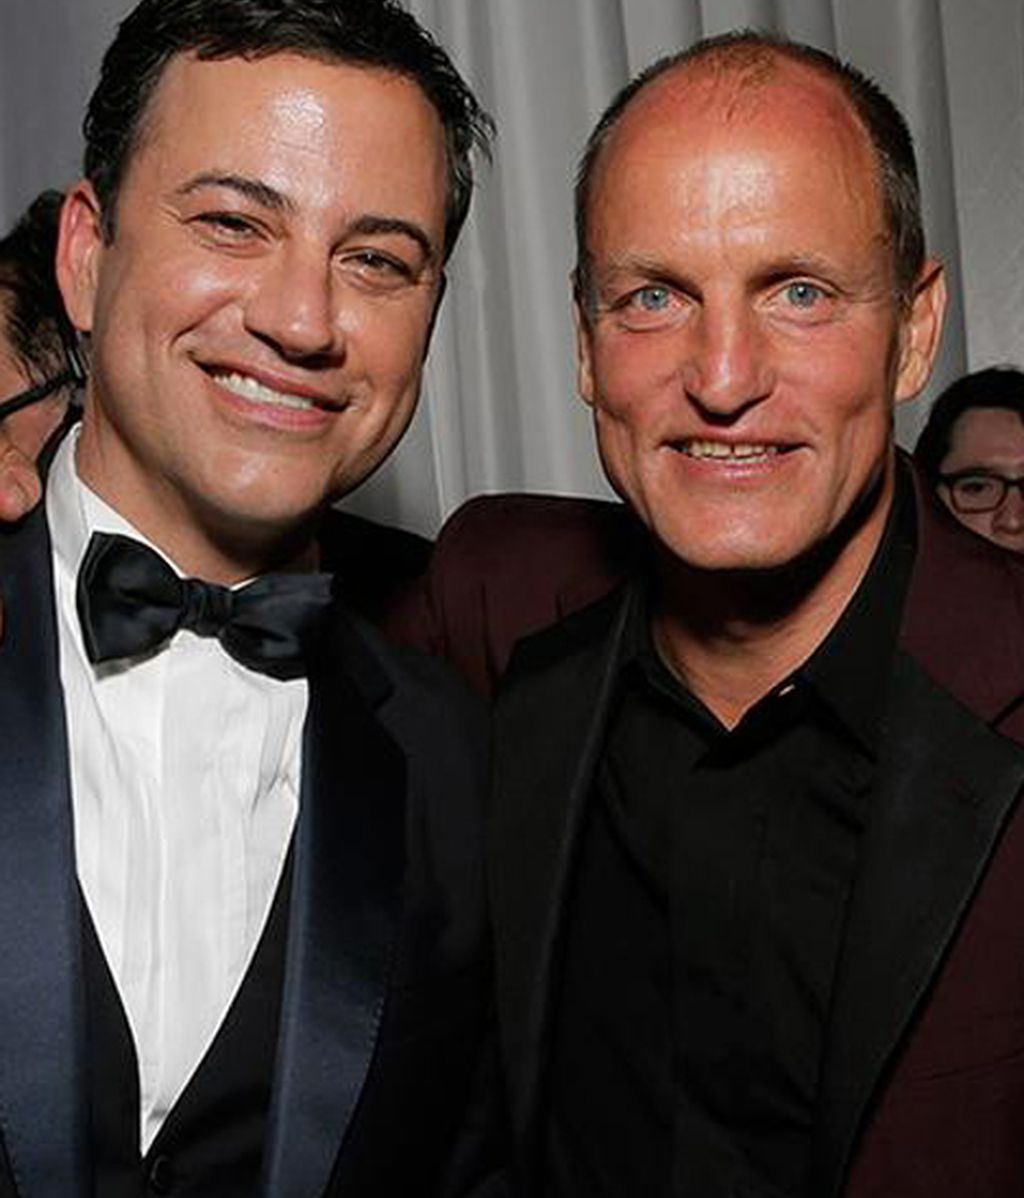 Jimmy Kimmel ('Jimmy Kimmel Live') y Woody Harrelson ('True detective')